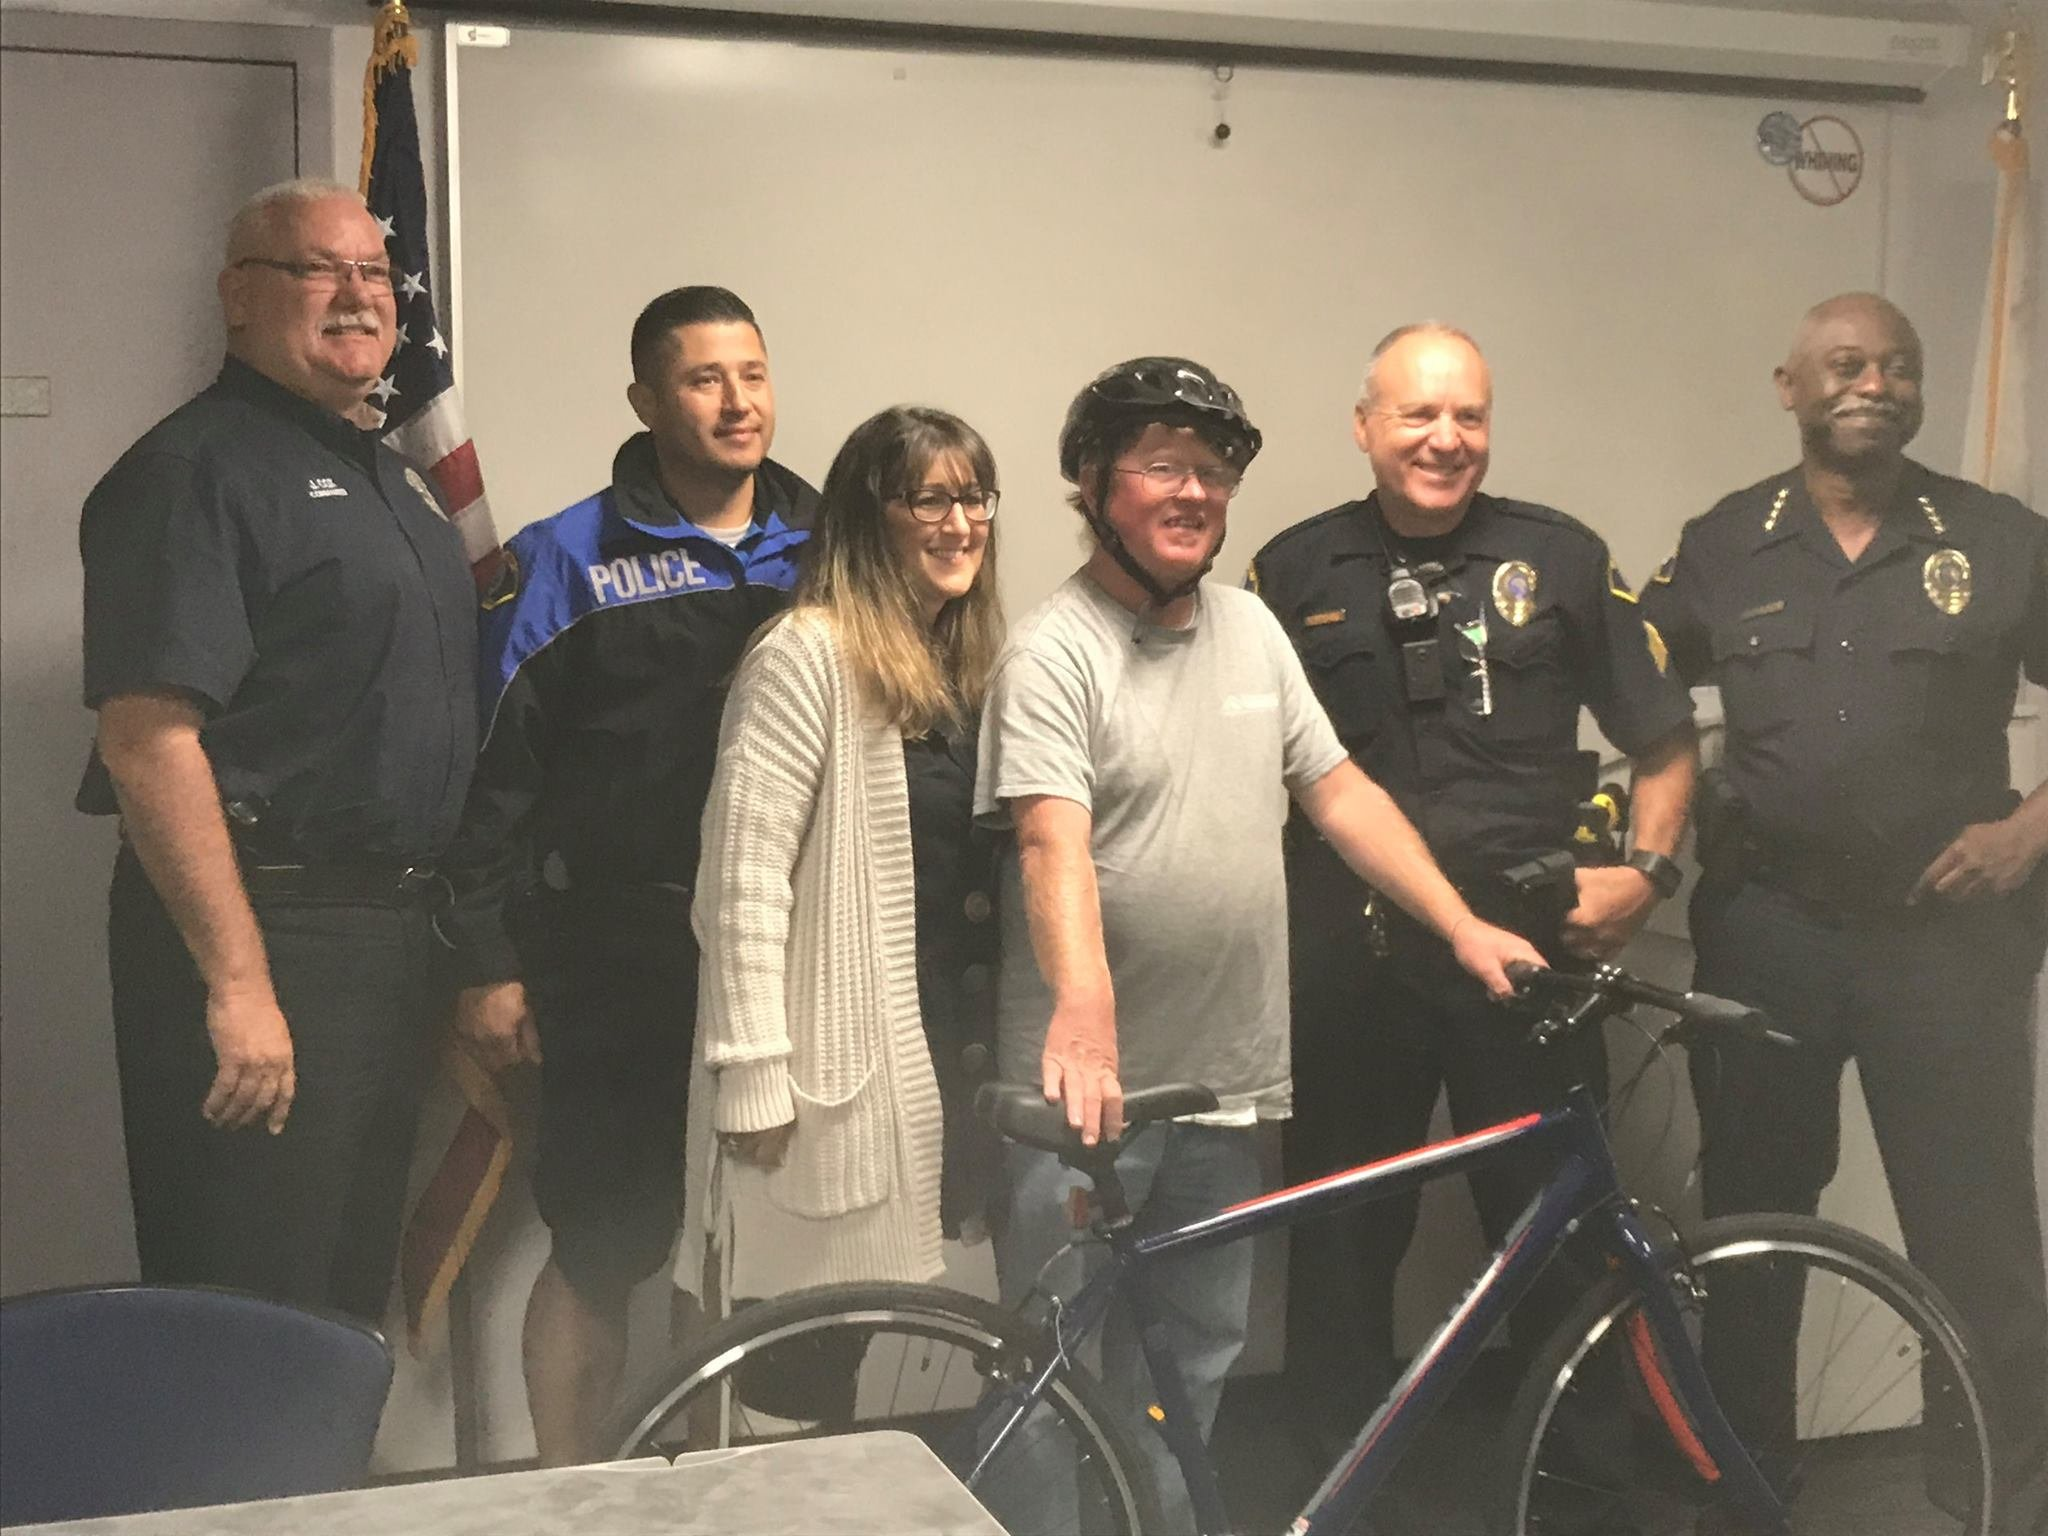 Matthew Majors poses with the new bike given to him by members of the Morro Bay Police Department. (Photo courtesy Morro Bay Police Dept./Facebook)